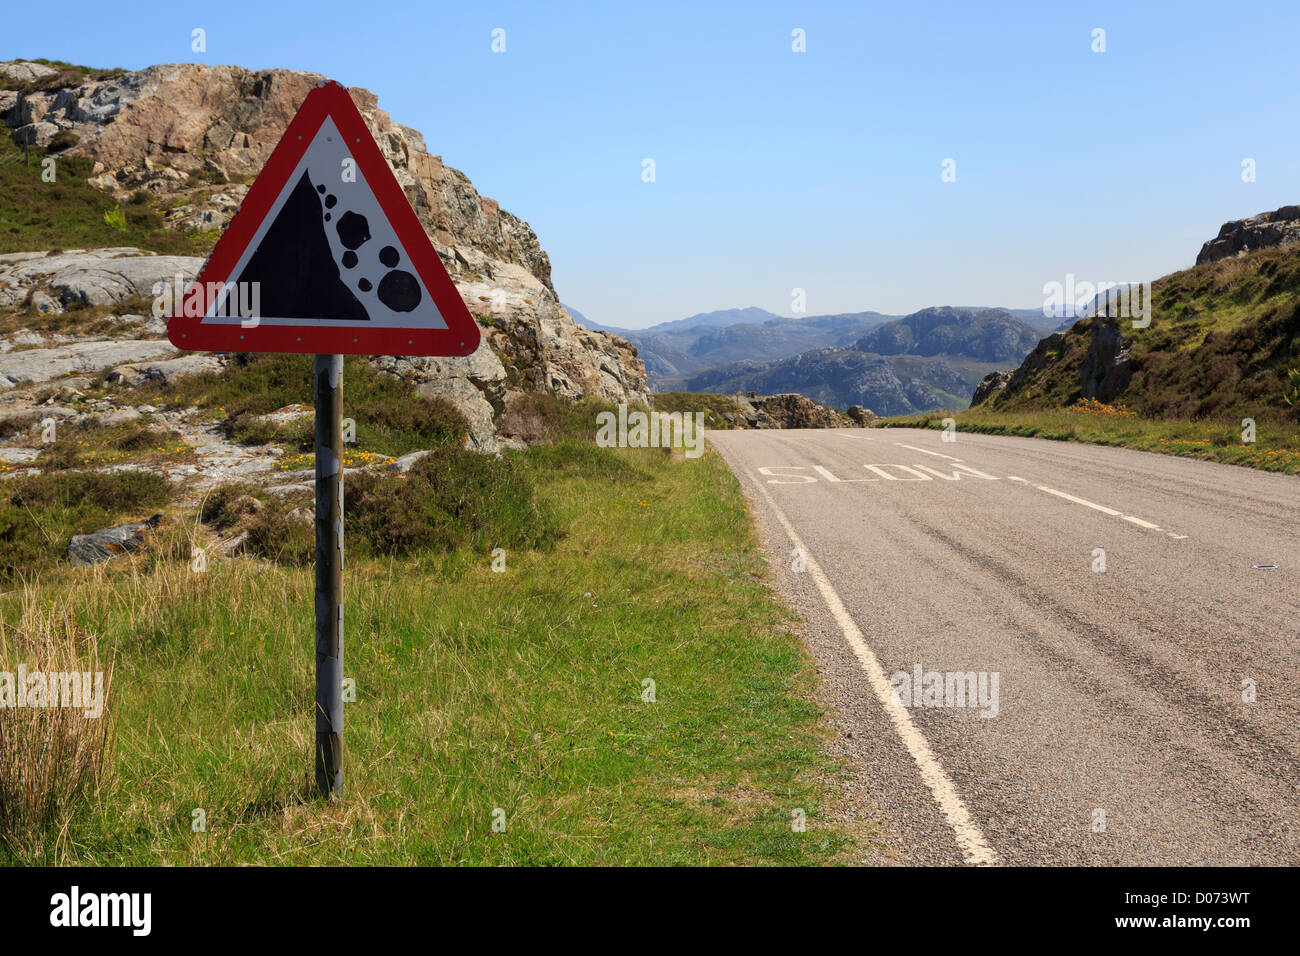 Triangular road sign warning danger of falling rocks in Wester Ross, Ross and Cromarty, Highland, Scotland UK, Britain - Stock Image